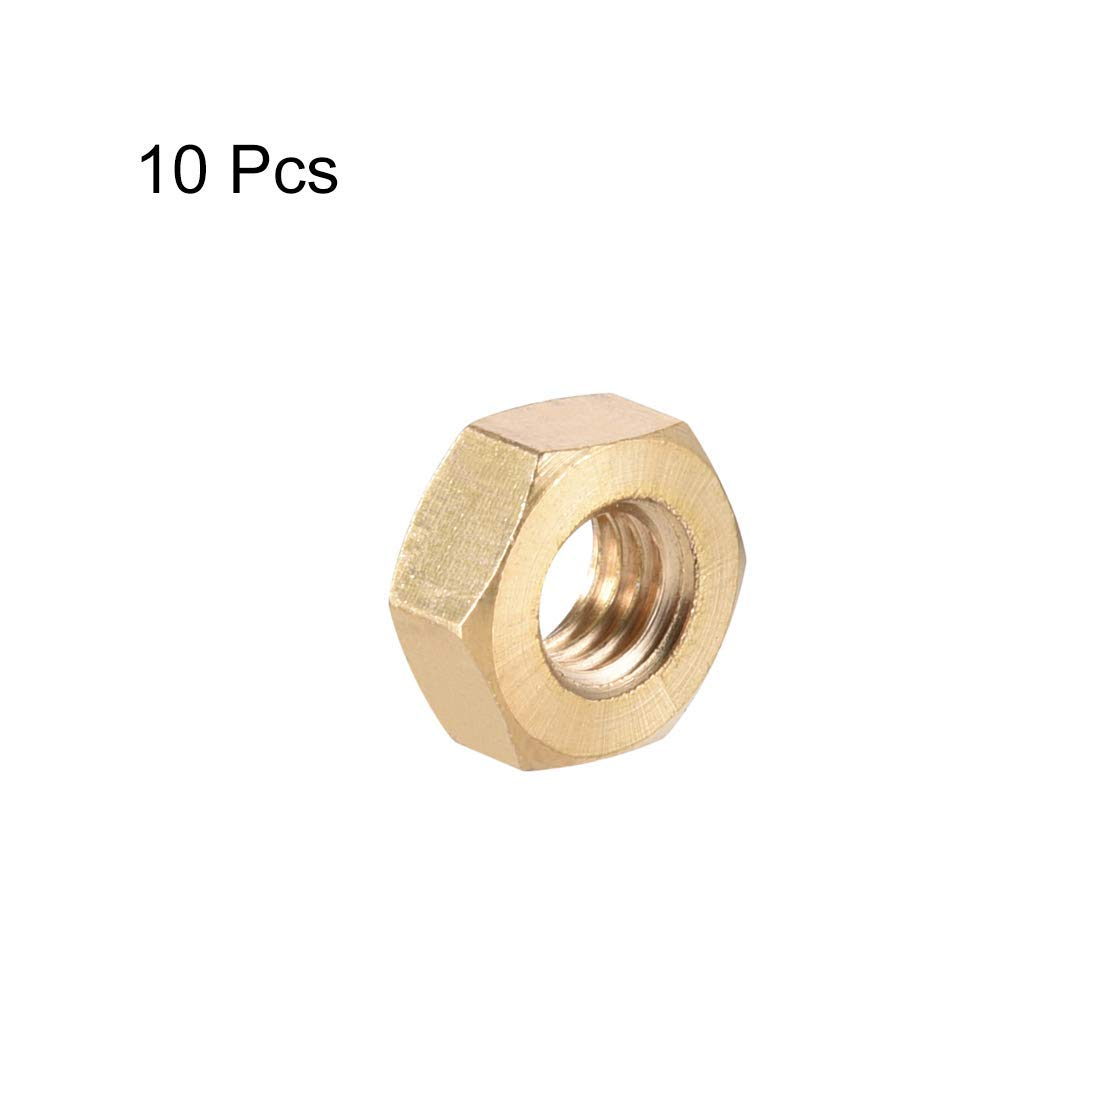 Hexagon Nuts DealMux Pack of 10 Hexagonal nut with Metric Thick Thread M8x1.25 mm Brass